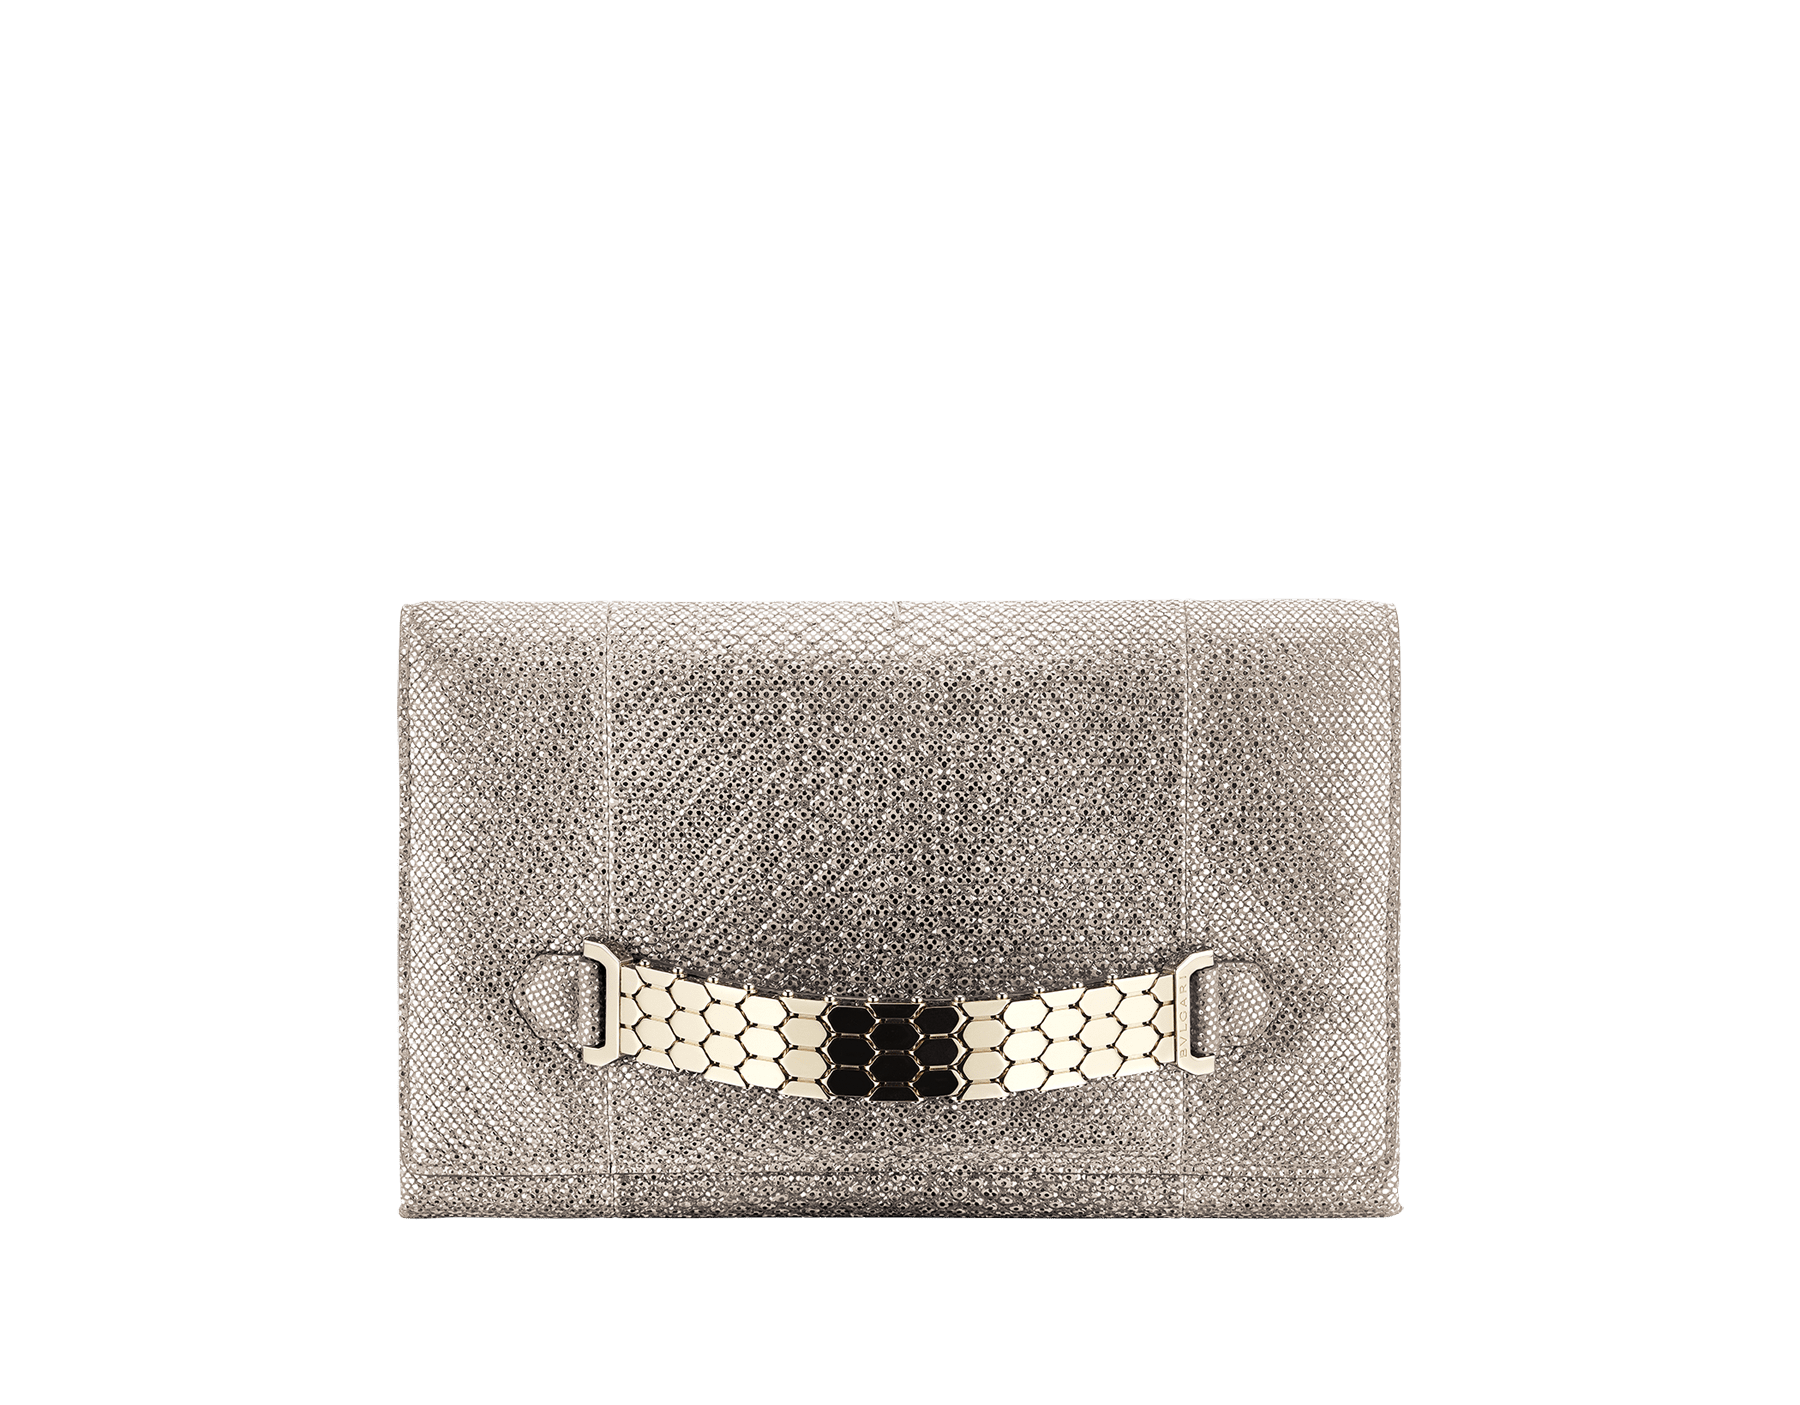 """Serpenti"" evening handle clutch bag in charcoal diamond metallic karung skin. Light gold Serpenti Seduttori handle. 526-HANDLECLUTCH image 1"